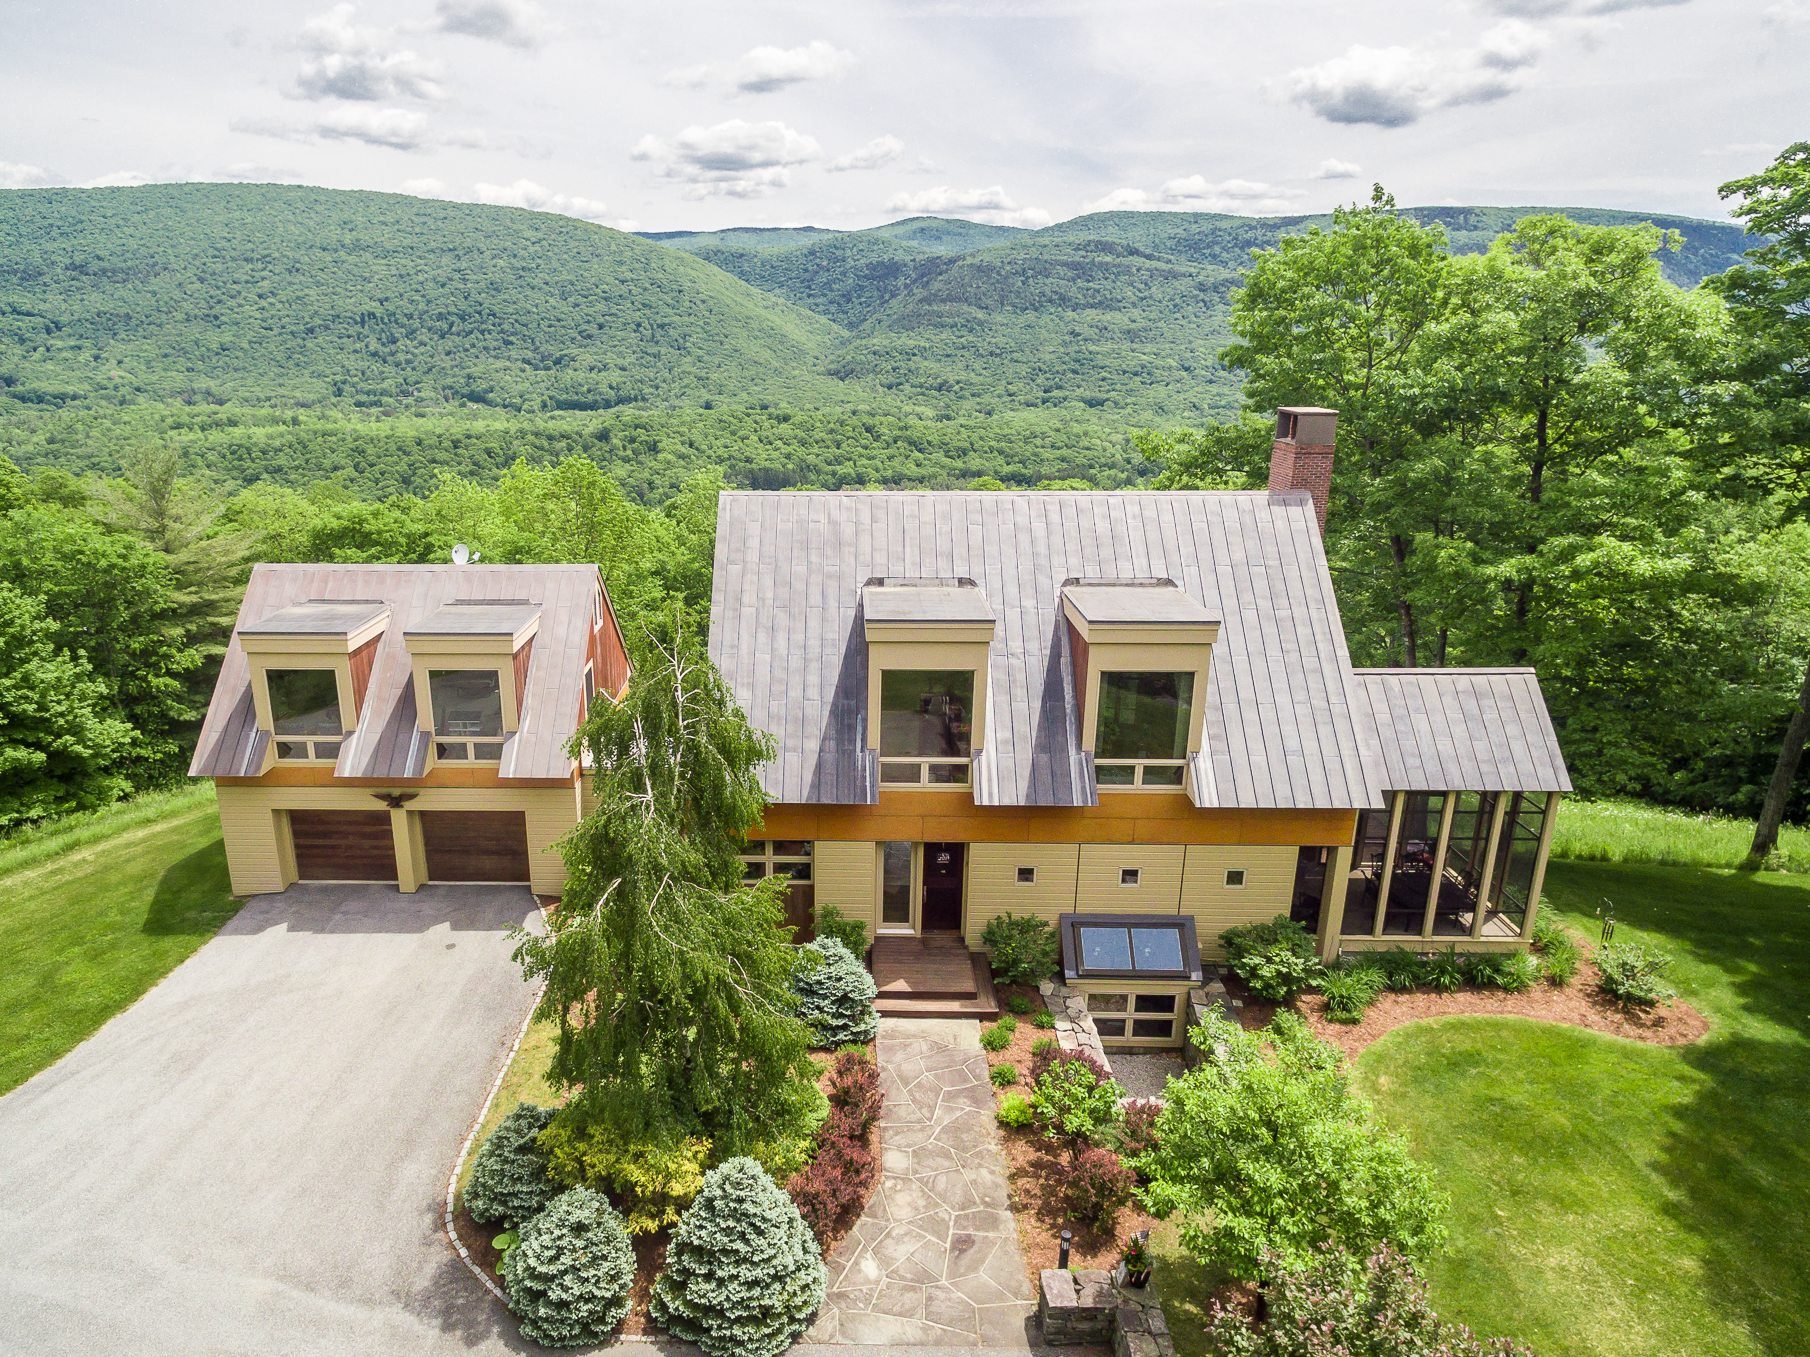 Single Family Home for Sale at Custom Contemporary with 23 Acres and Views 655 Upper Squirrel Hollow Rd Dorset, Vermont, 05253 United States